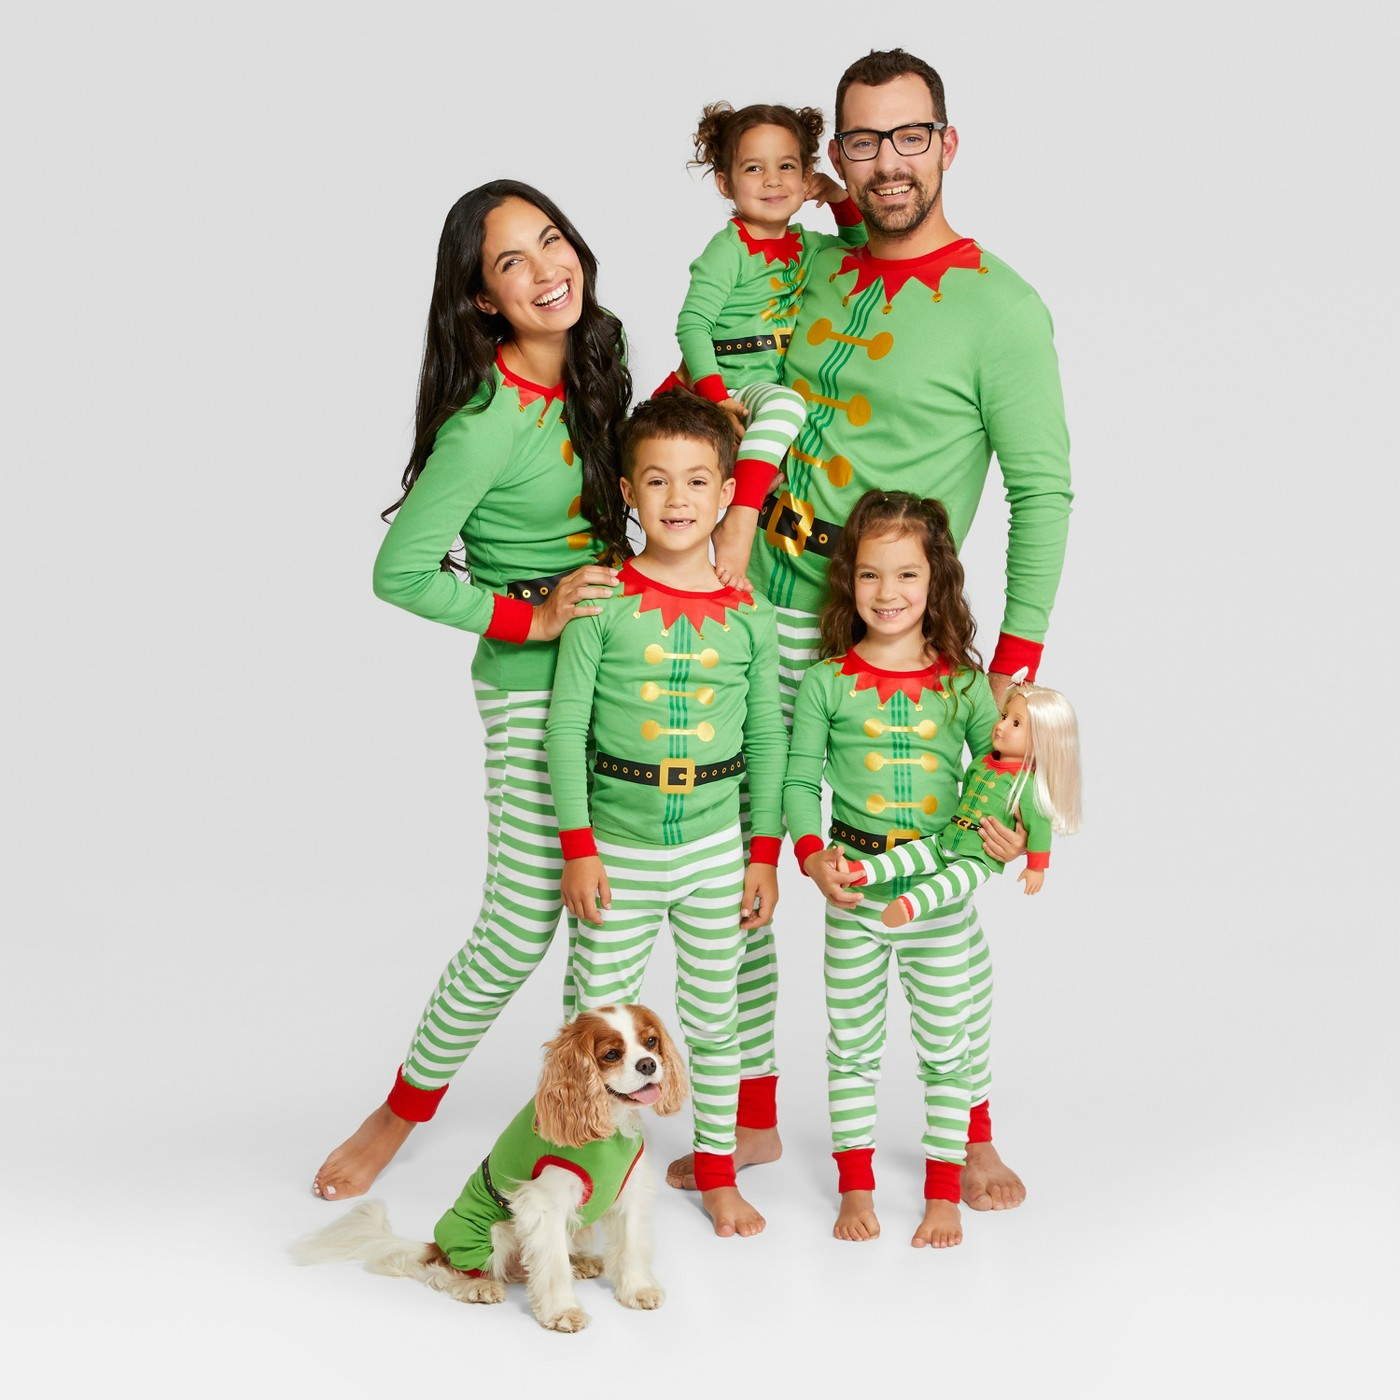 Family Christmas pajamas - love the elf pajamas kellyelko.com #christmaspajamas #christmas #christmastraditions